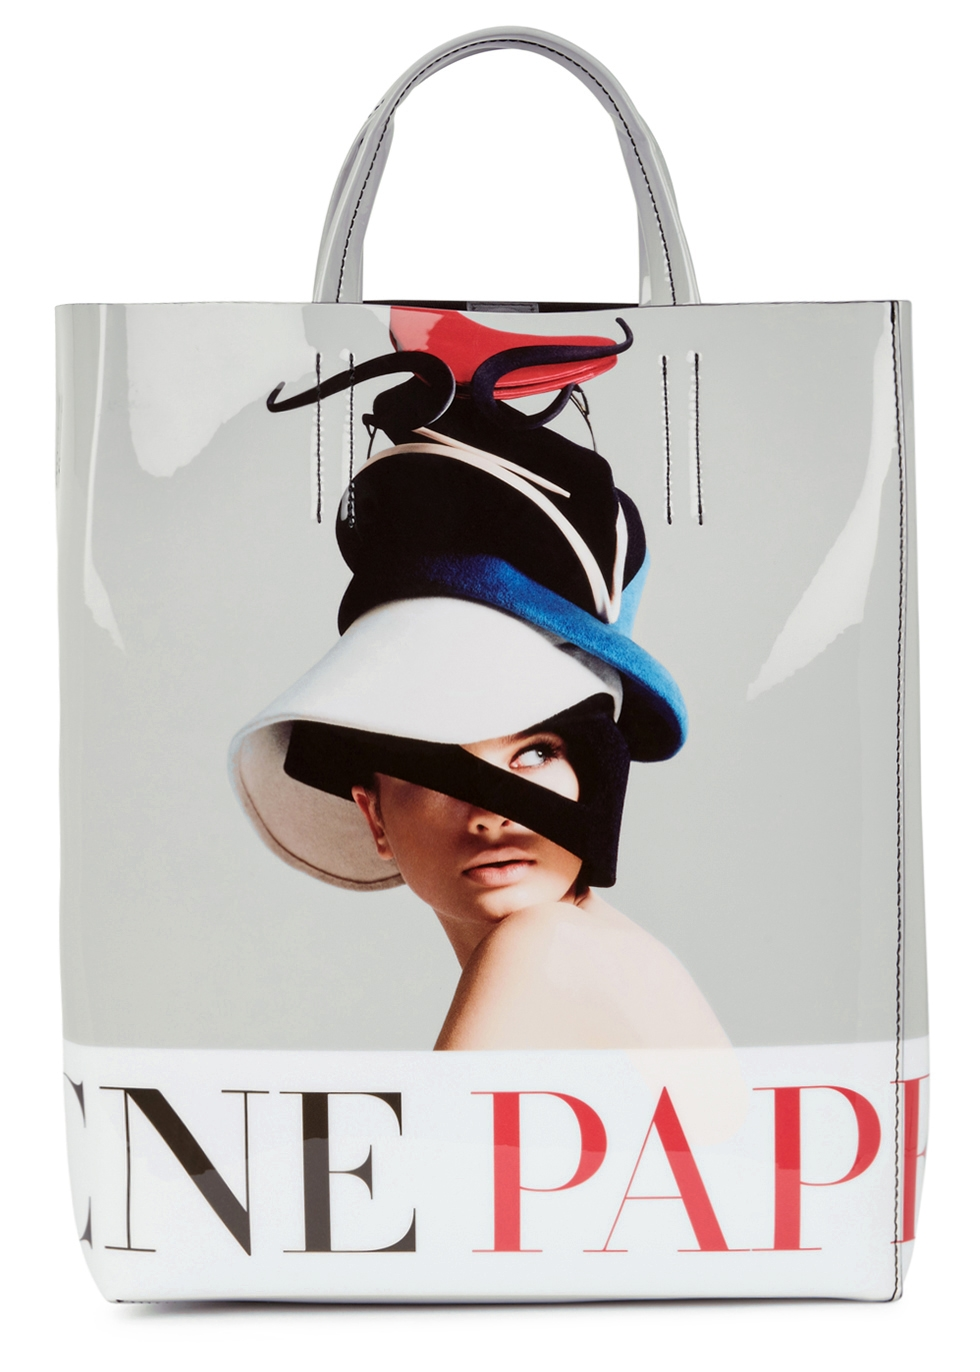 ACNE STUDIOS BAKER PRINTED PATENT LEATHER TOTE